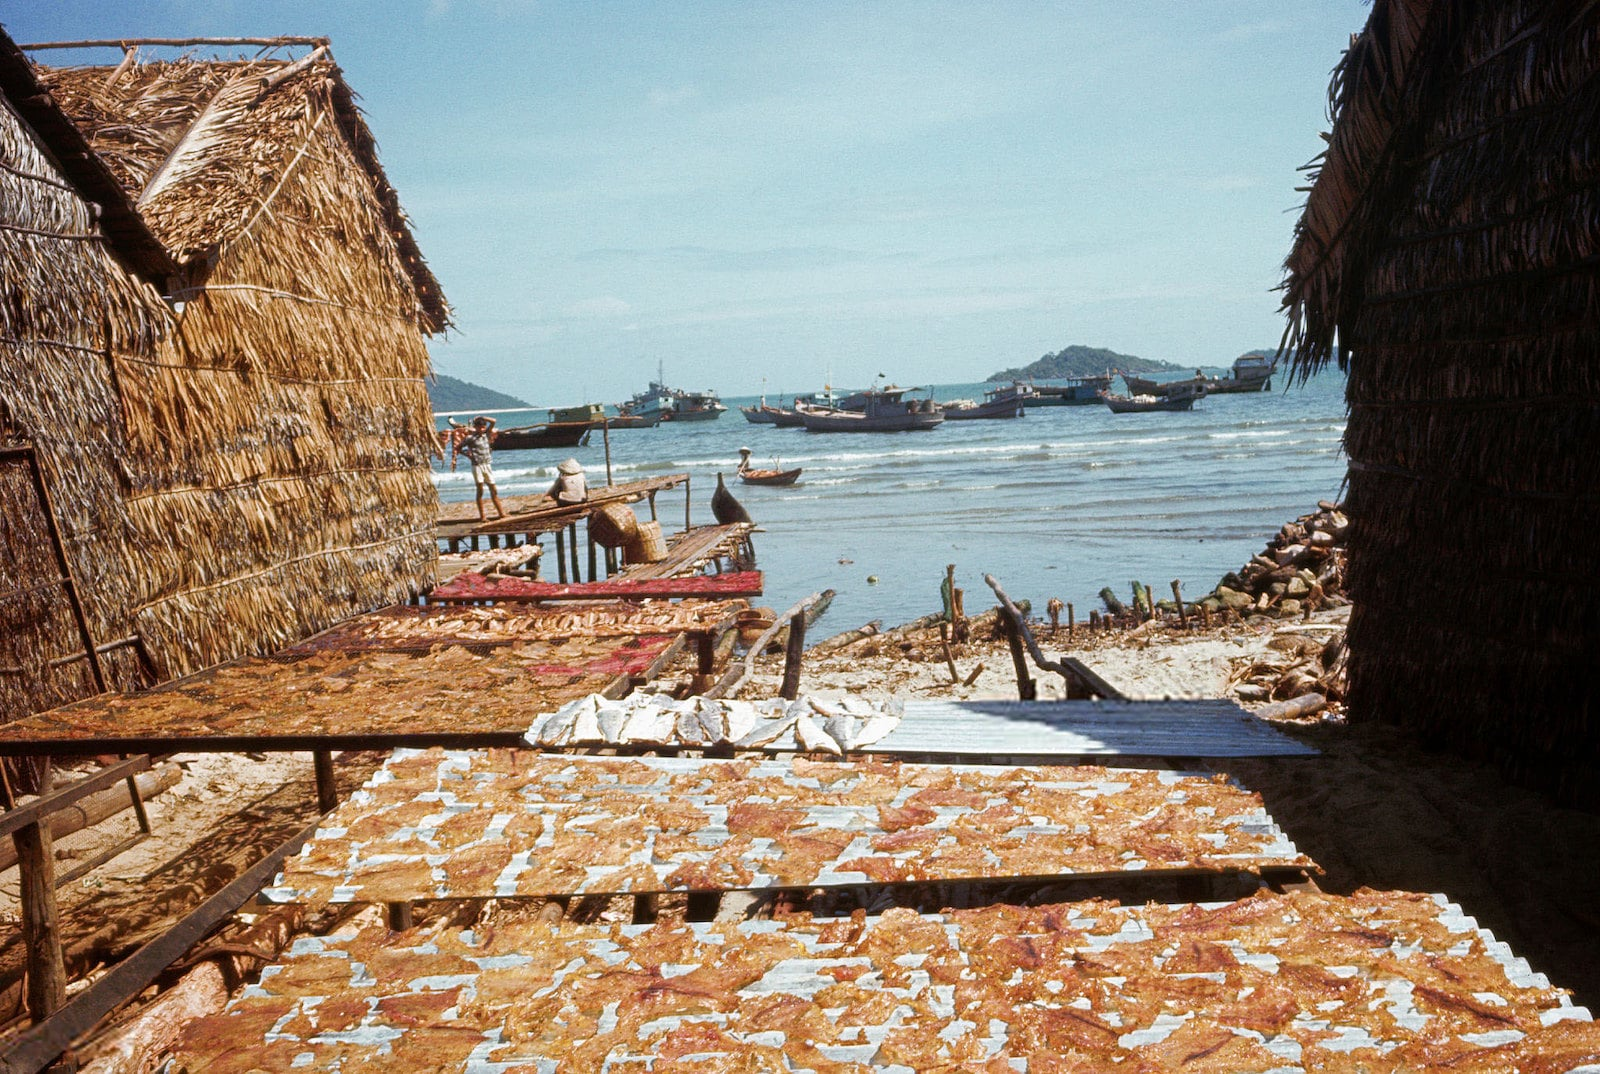 Image of a fishing village in Phu Quoc in 1968 in Vietnam